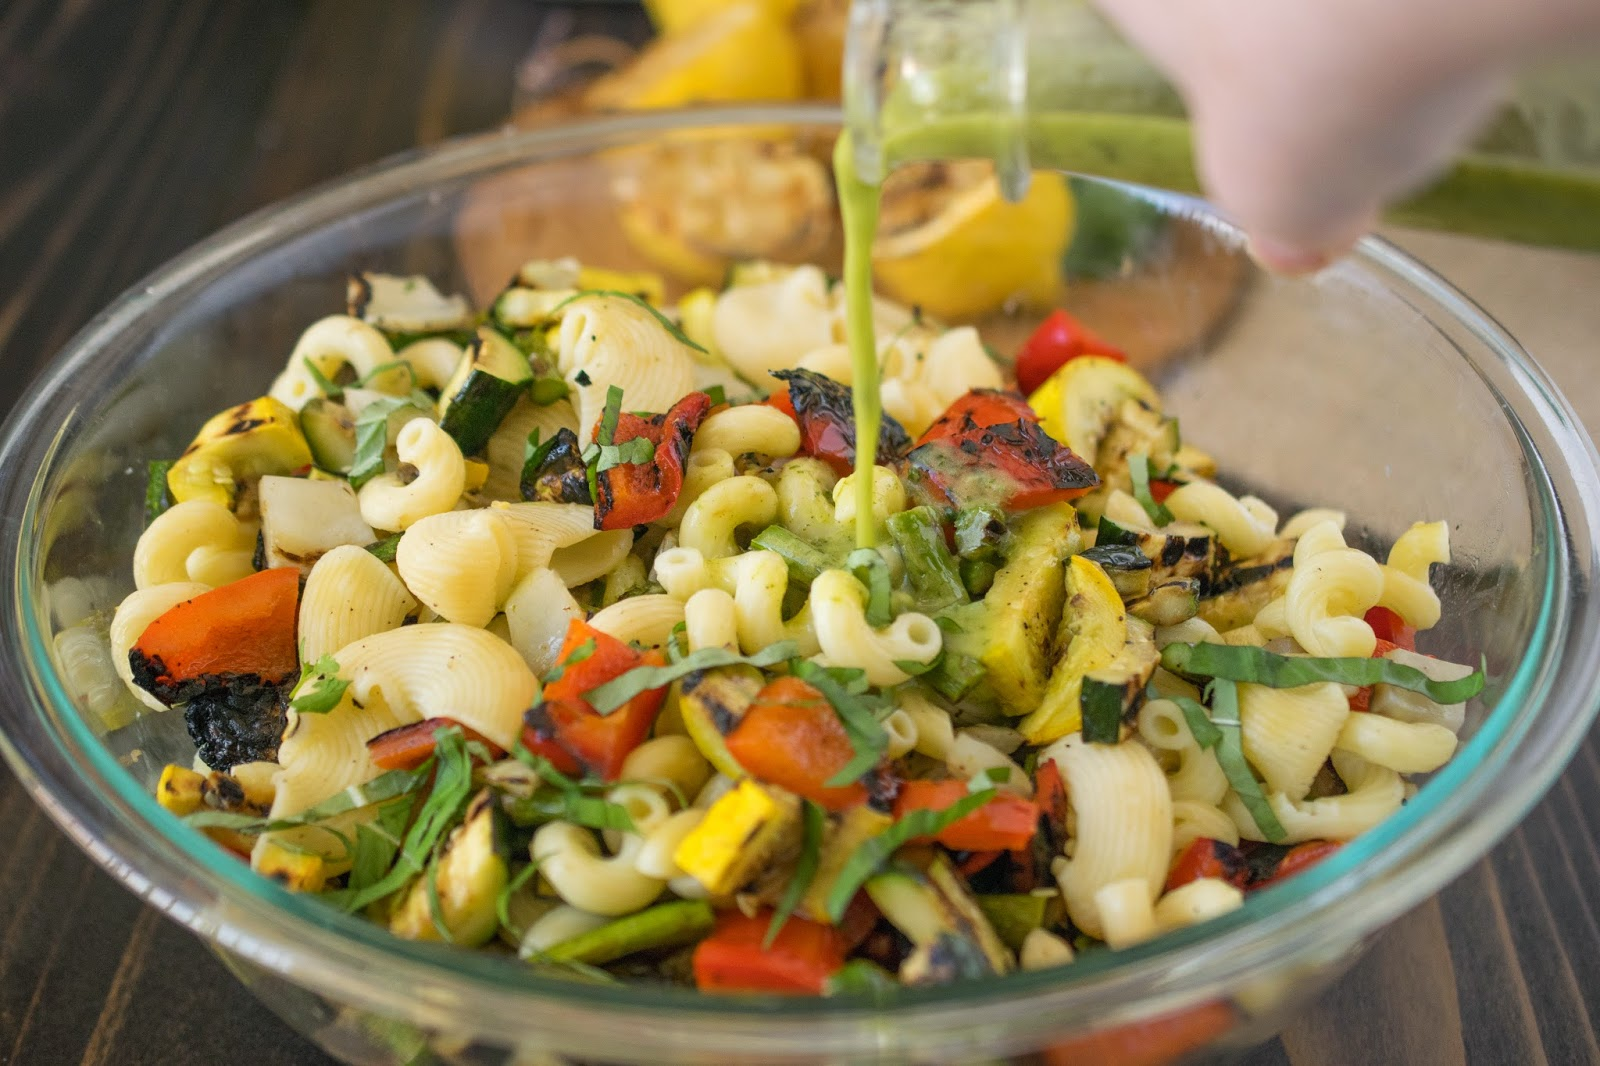 Grilled Spring vegetable pasta salad dressing being poured over the salad in a large glass bowl